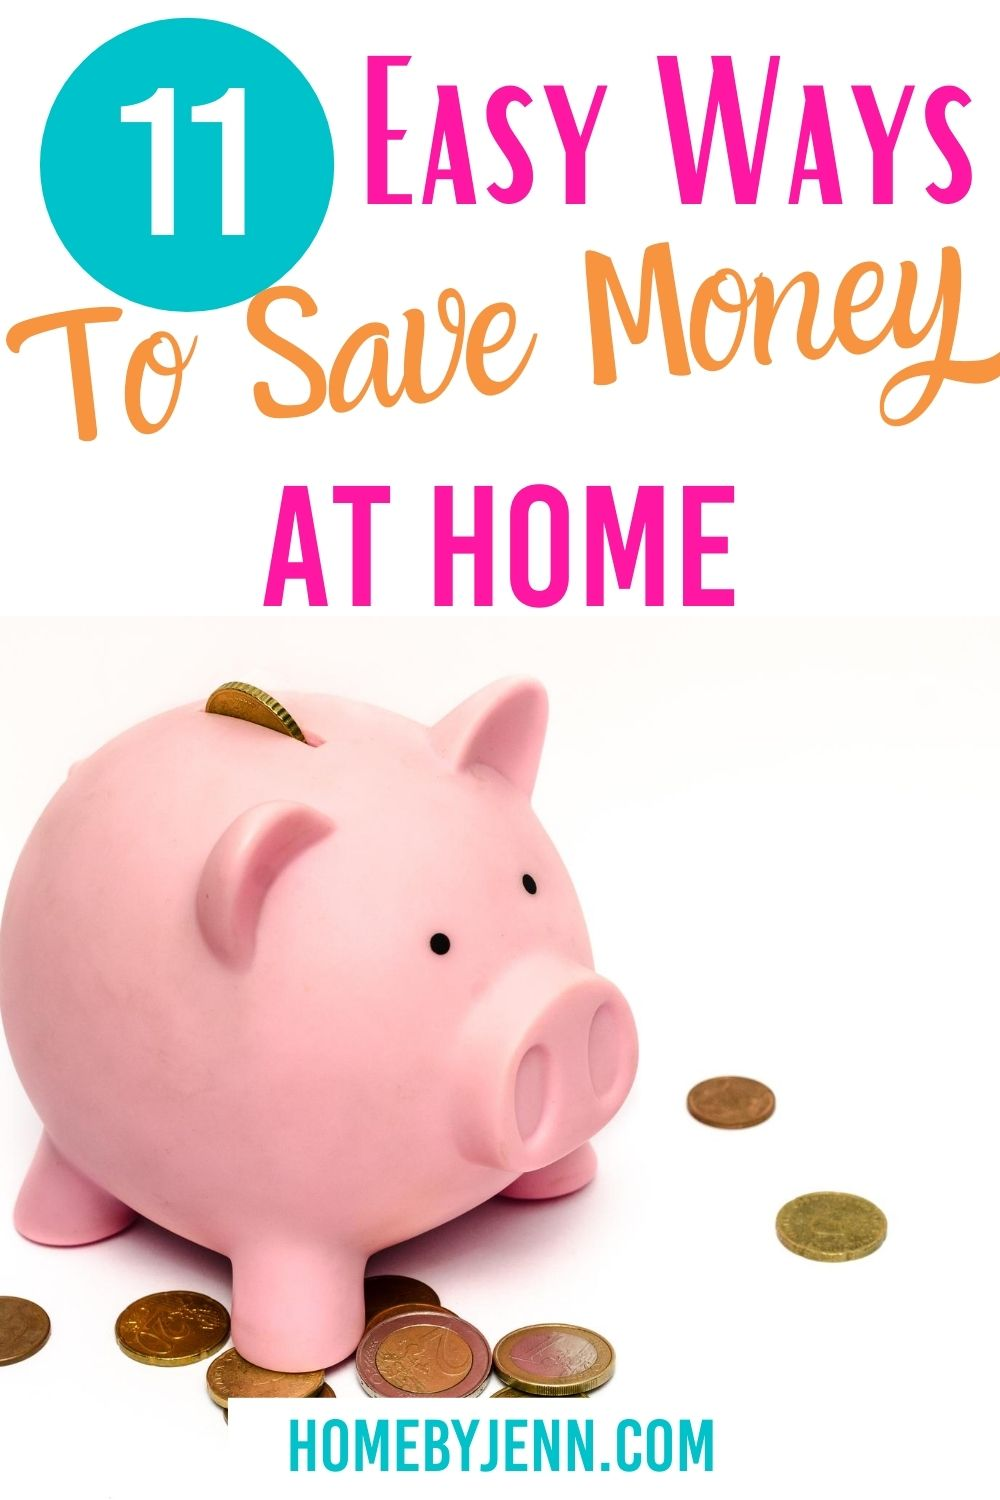 Make a few changes around the house and start saving money. These money-saving tips will allow you to save money around the house without feeling like you're sacrificing. via @homebyjenn